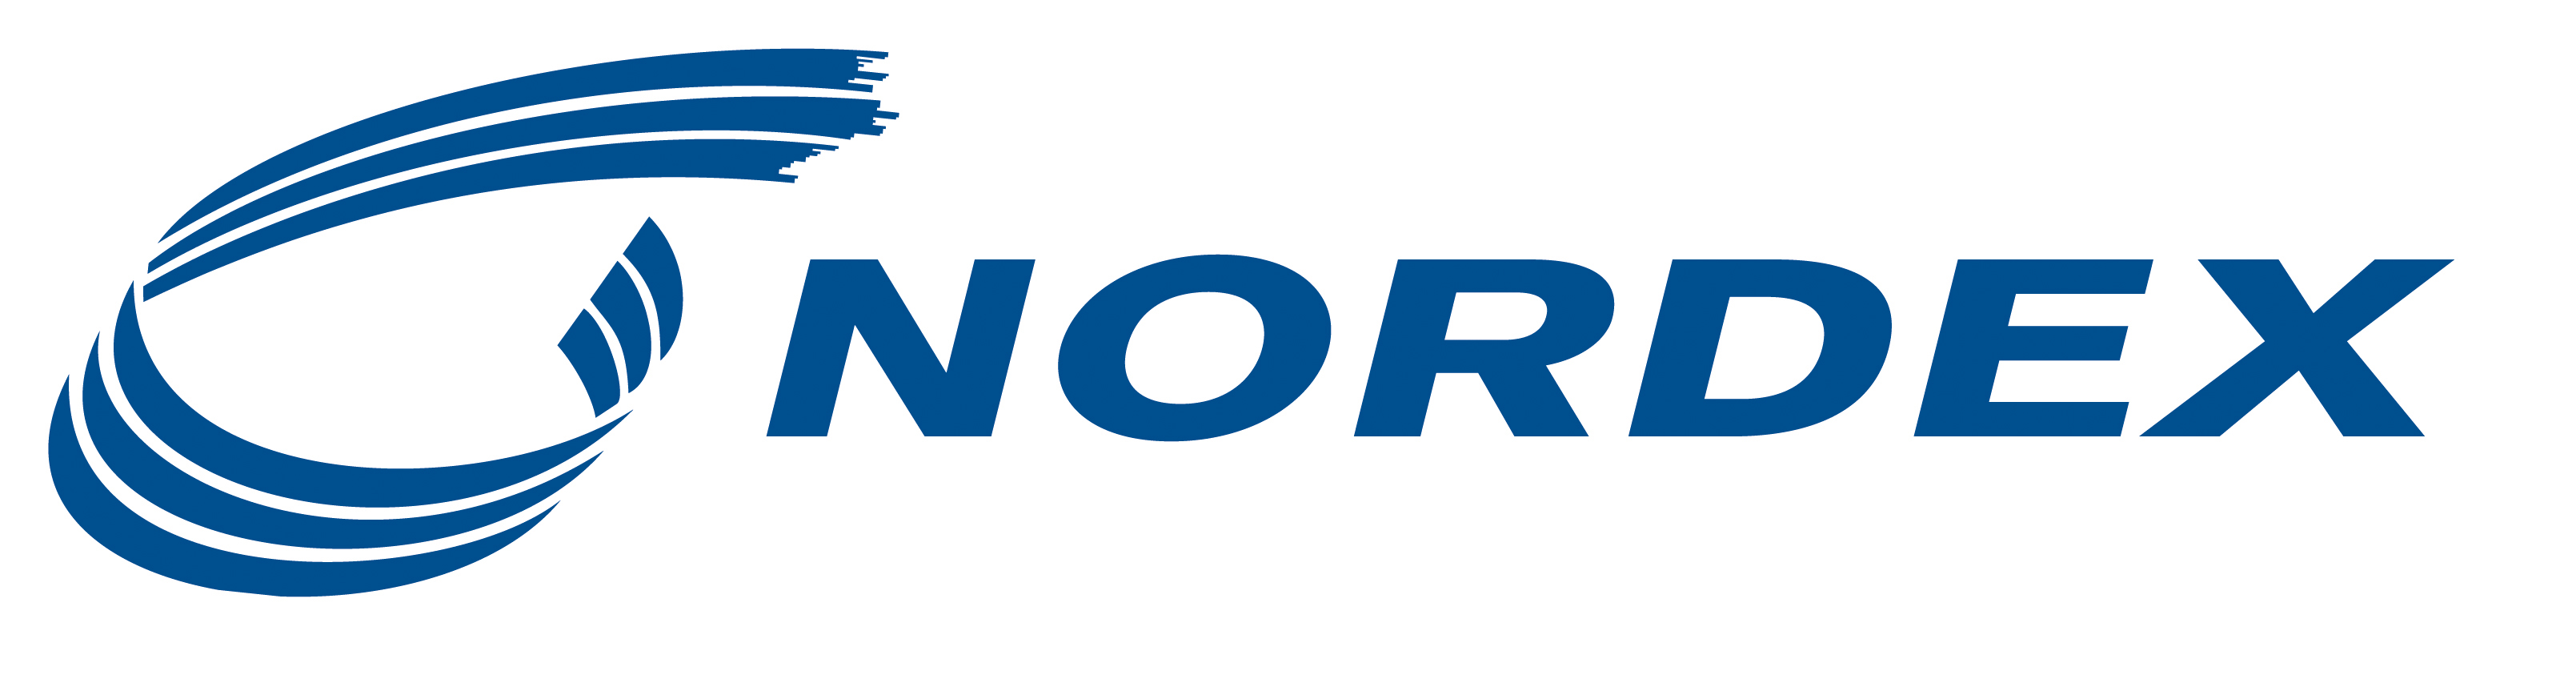 NordexLogo_rgb_ohneClaim